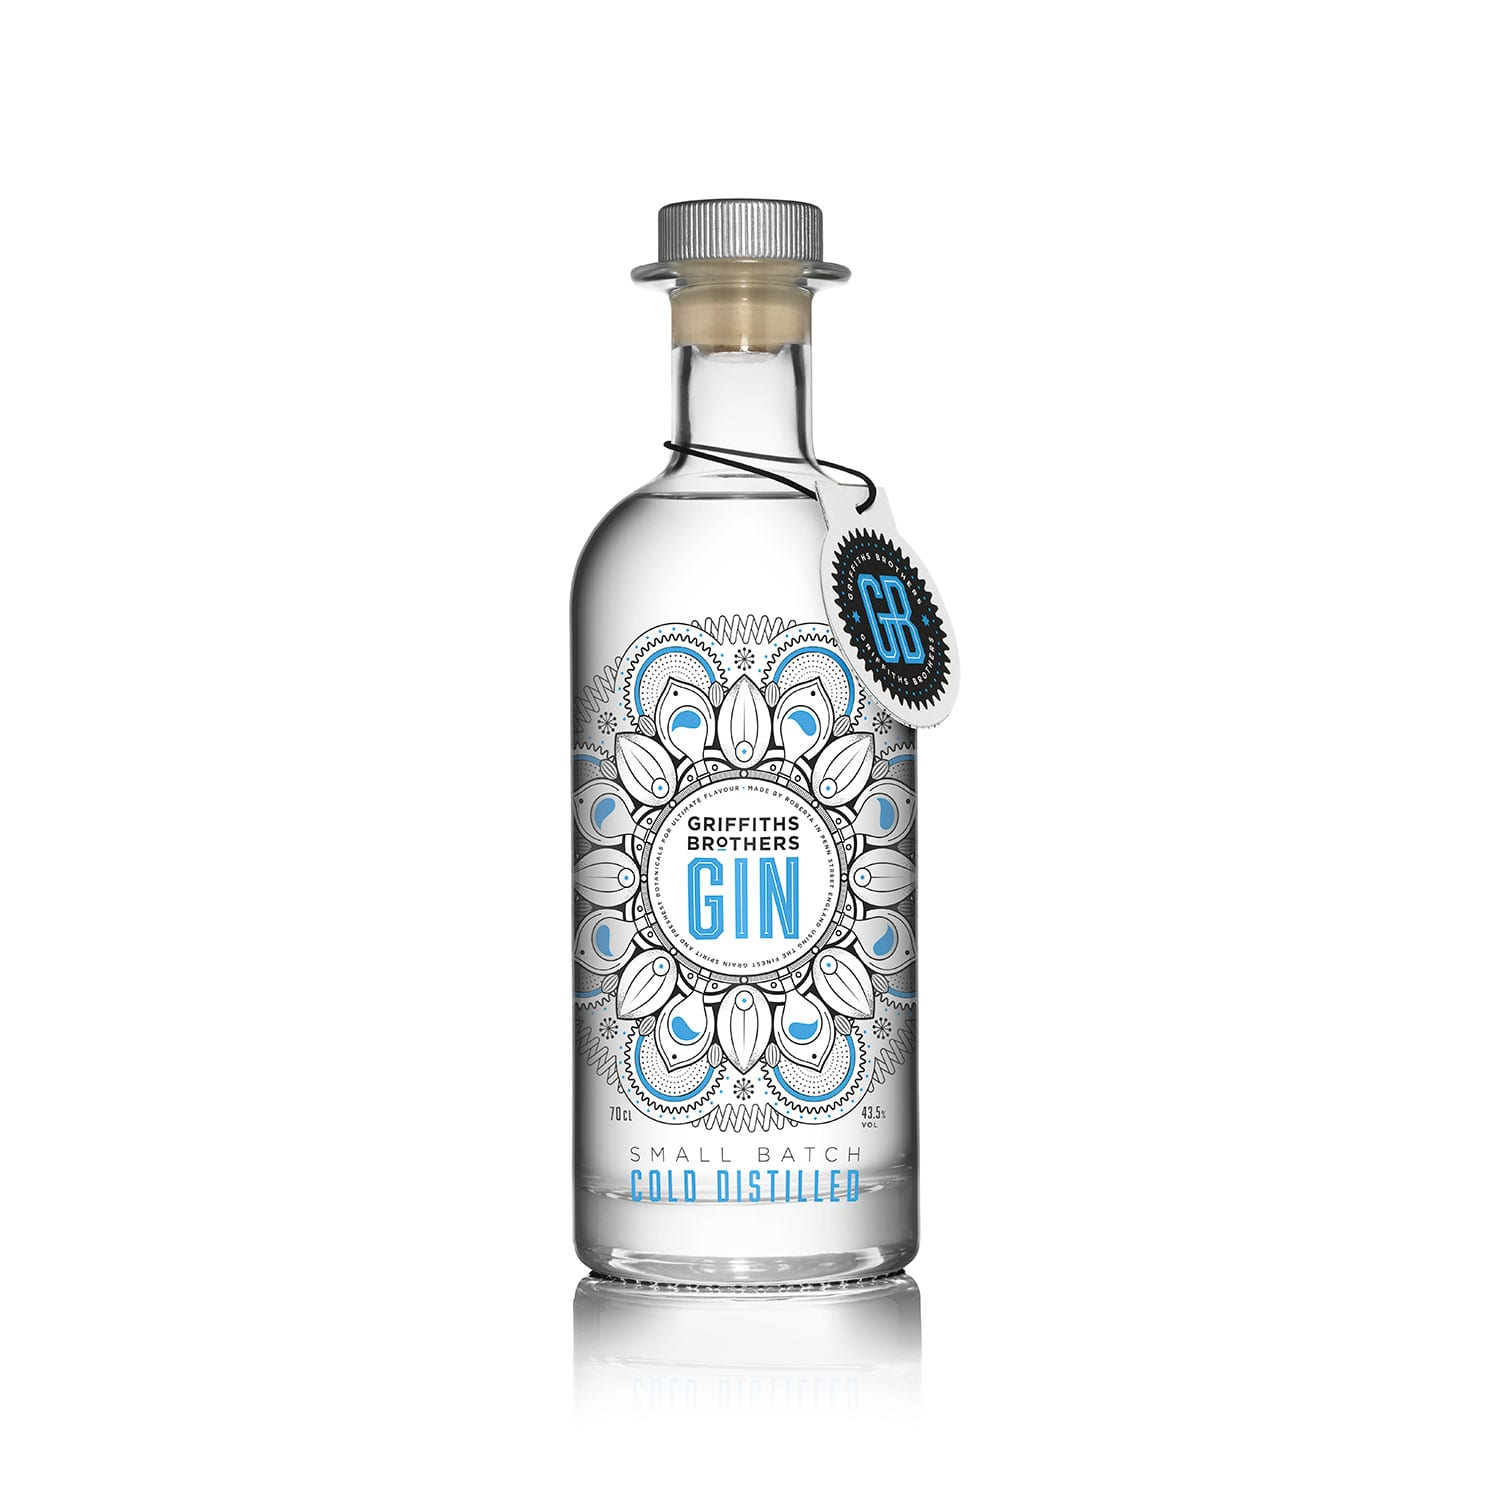 Griffiths Brothers Gin